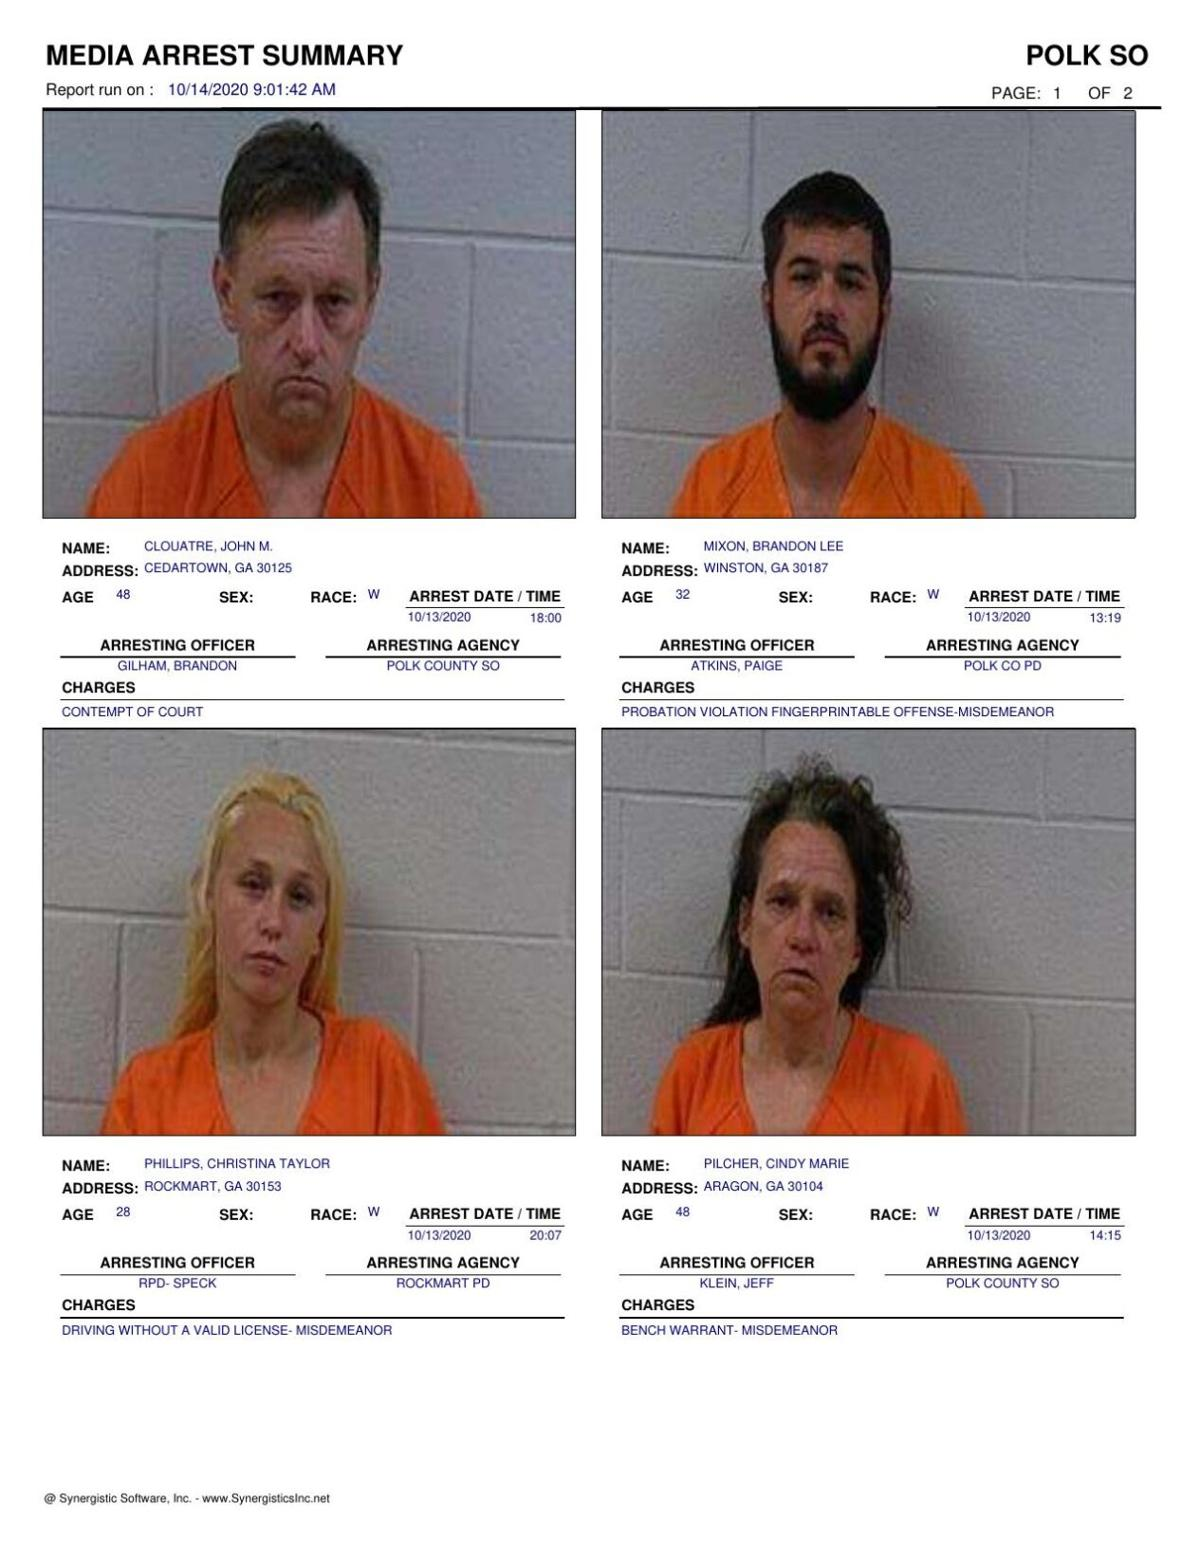 Polk County Jail Report for Wednesday, Oct. 14